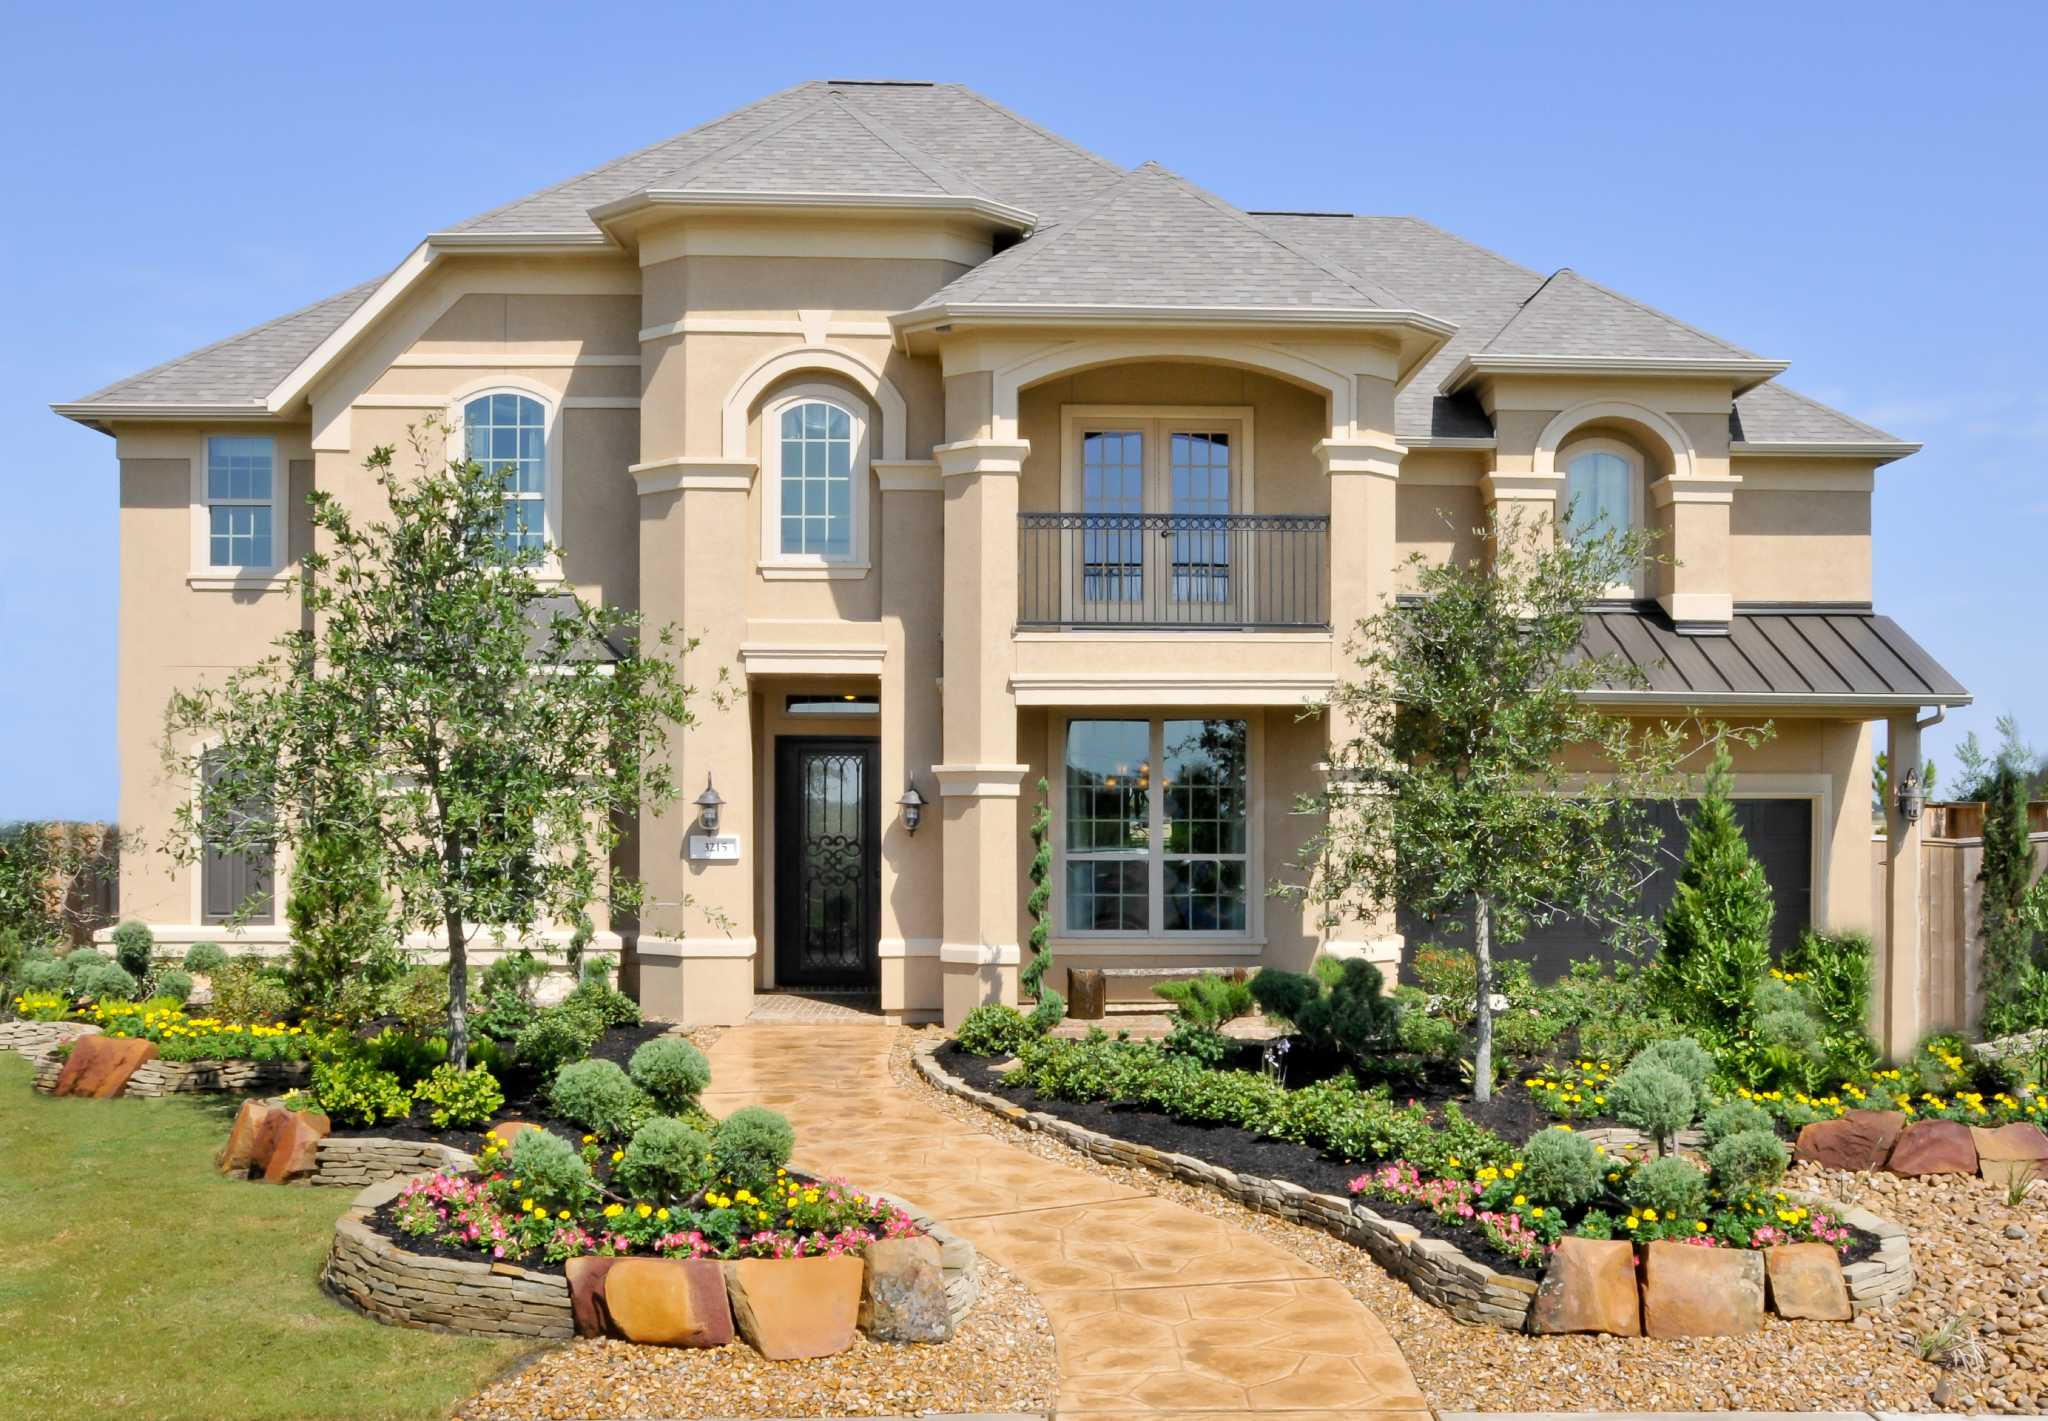 Cinco Ranch Features Variety Of Homes Ready For Move In This Fall